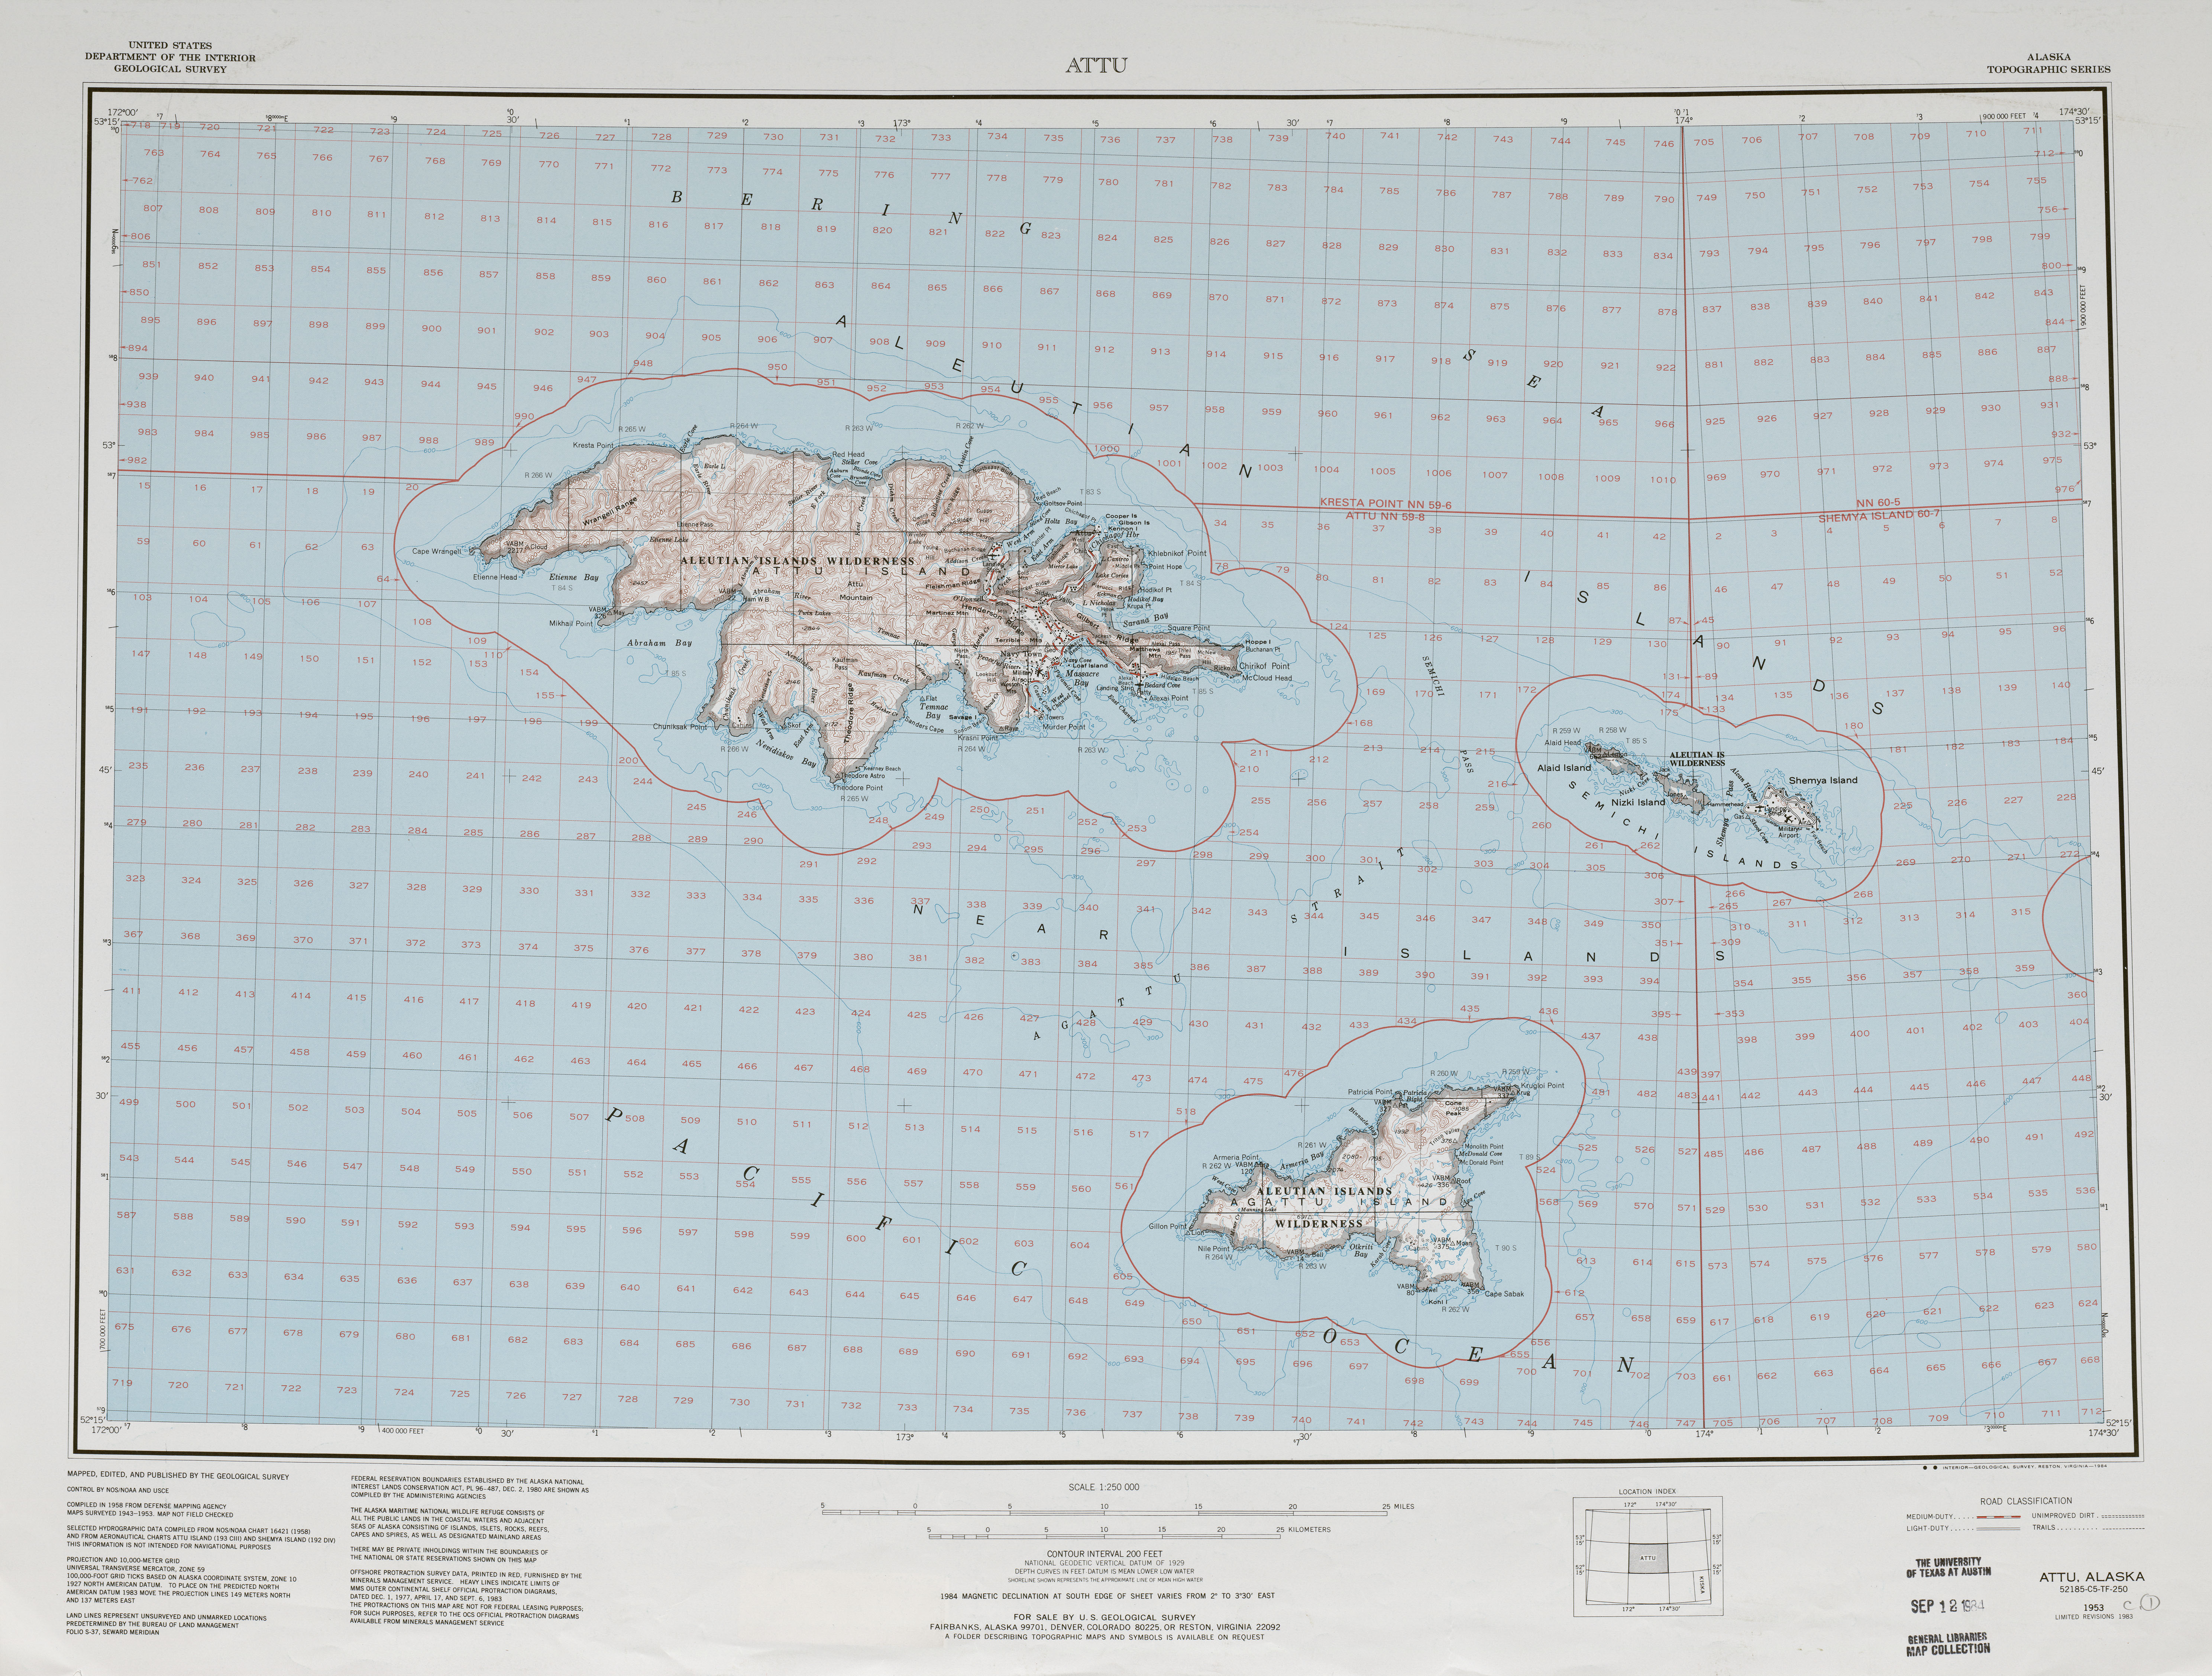 Attu Topographic Map Sheet, United States 1982